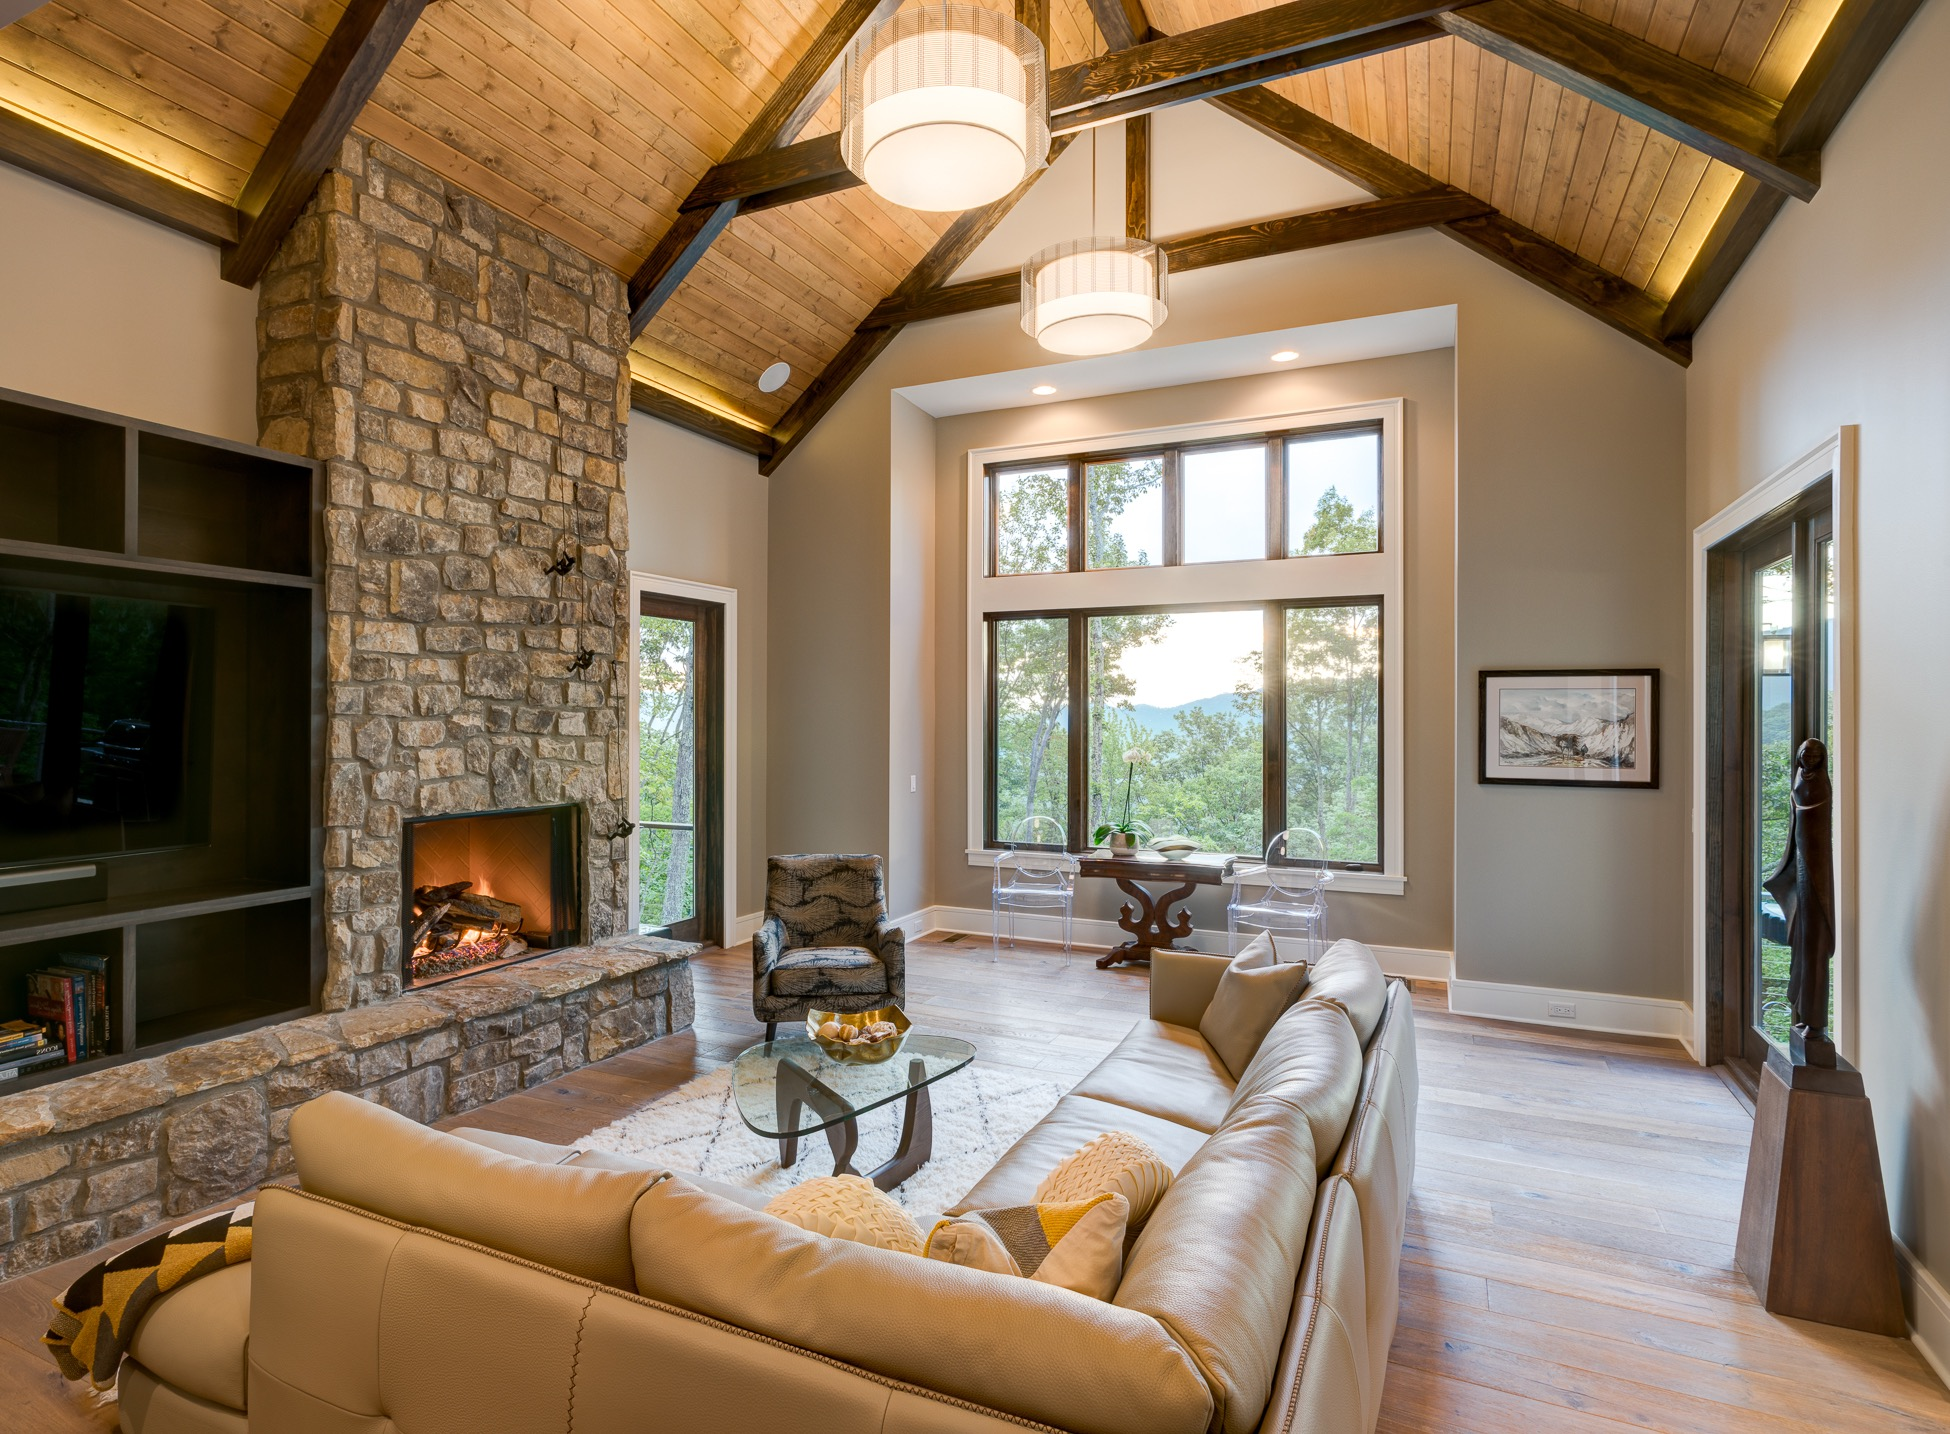 Neutral Rustic Living Room With Wood Ceiling And Stone Fireplace (Image 20 of 36)